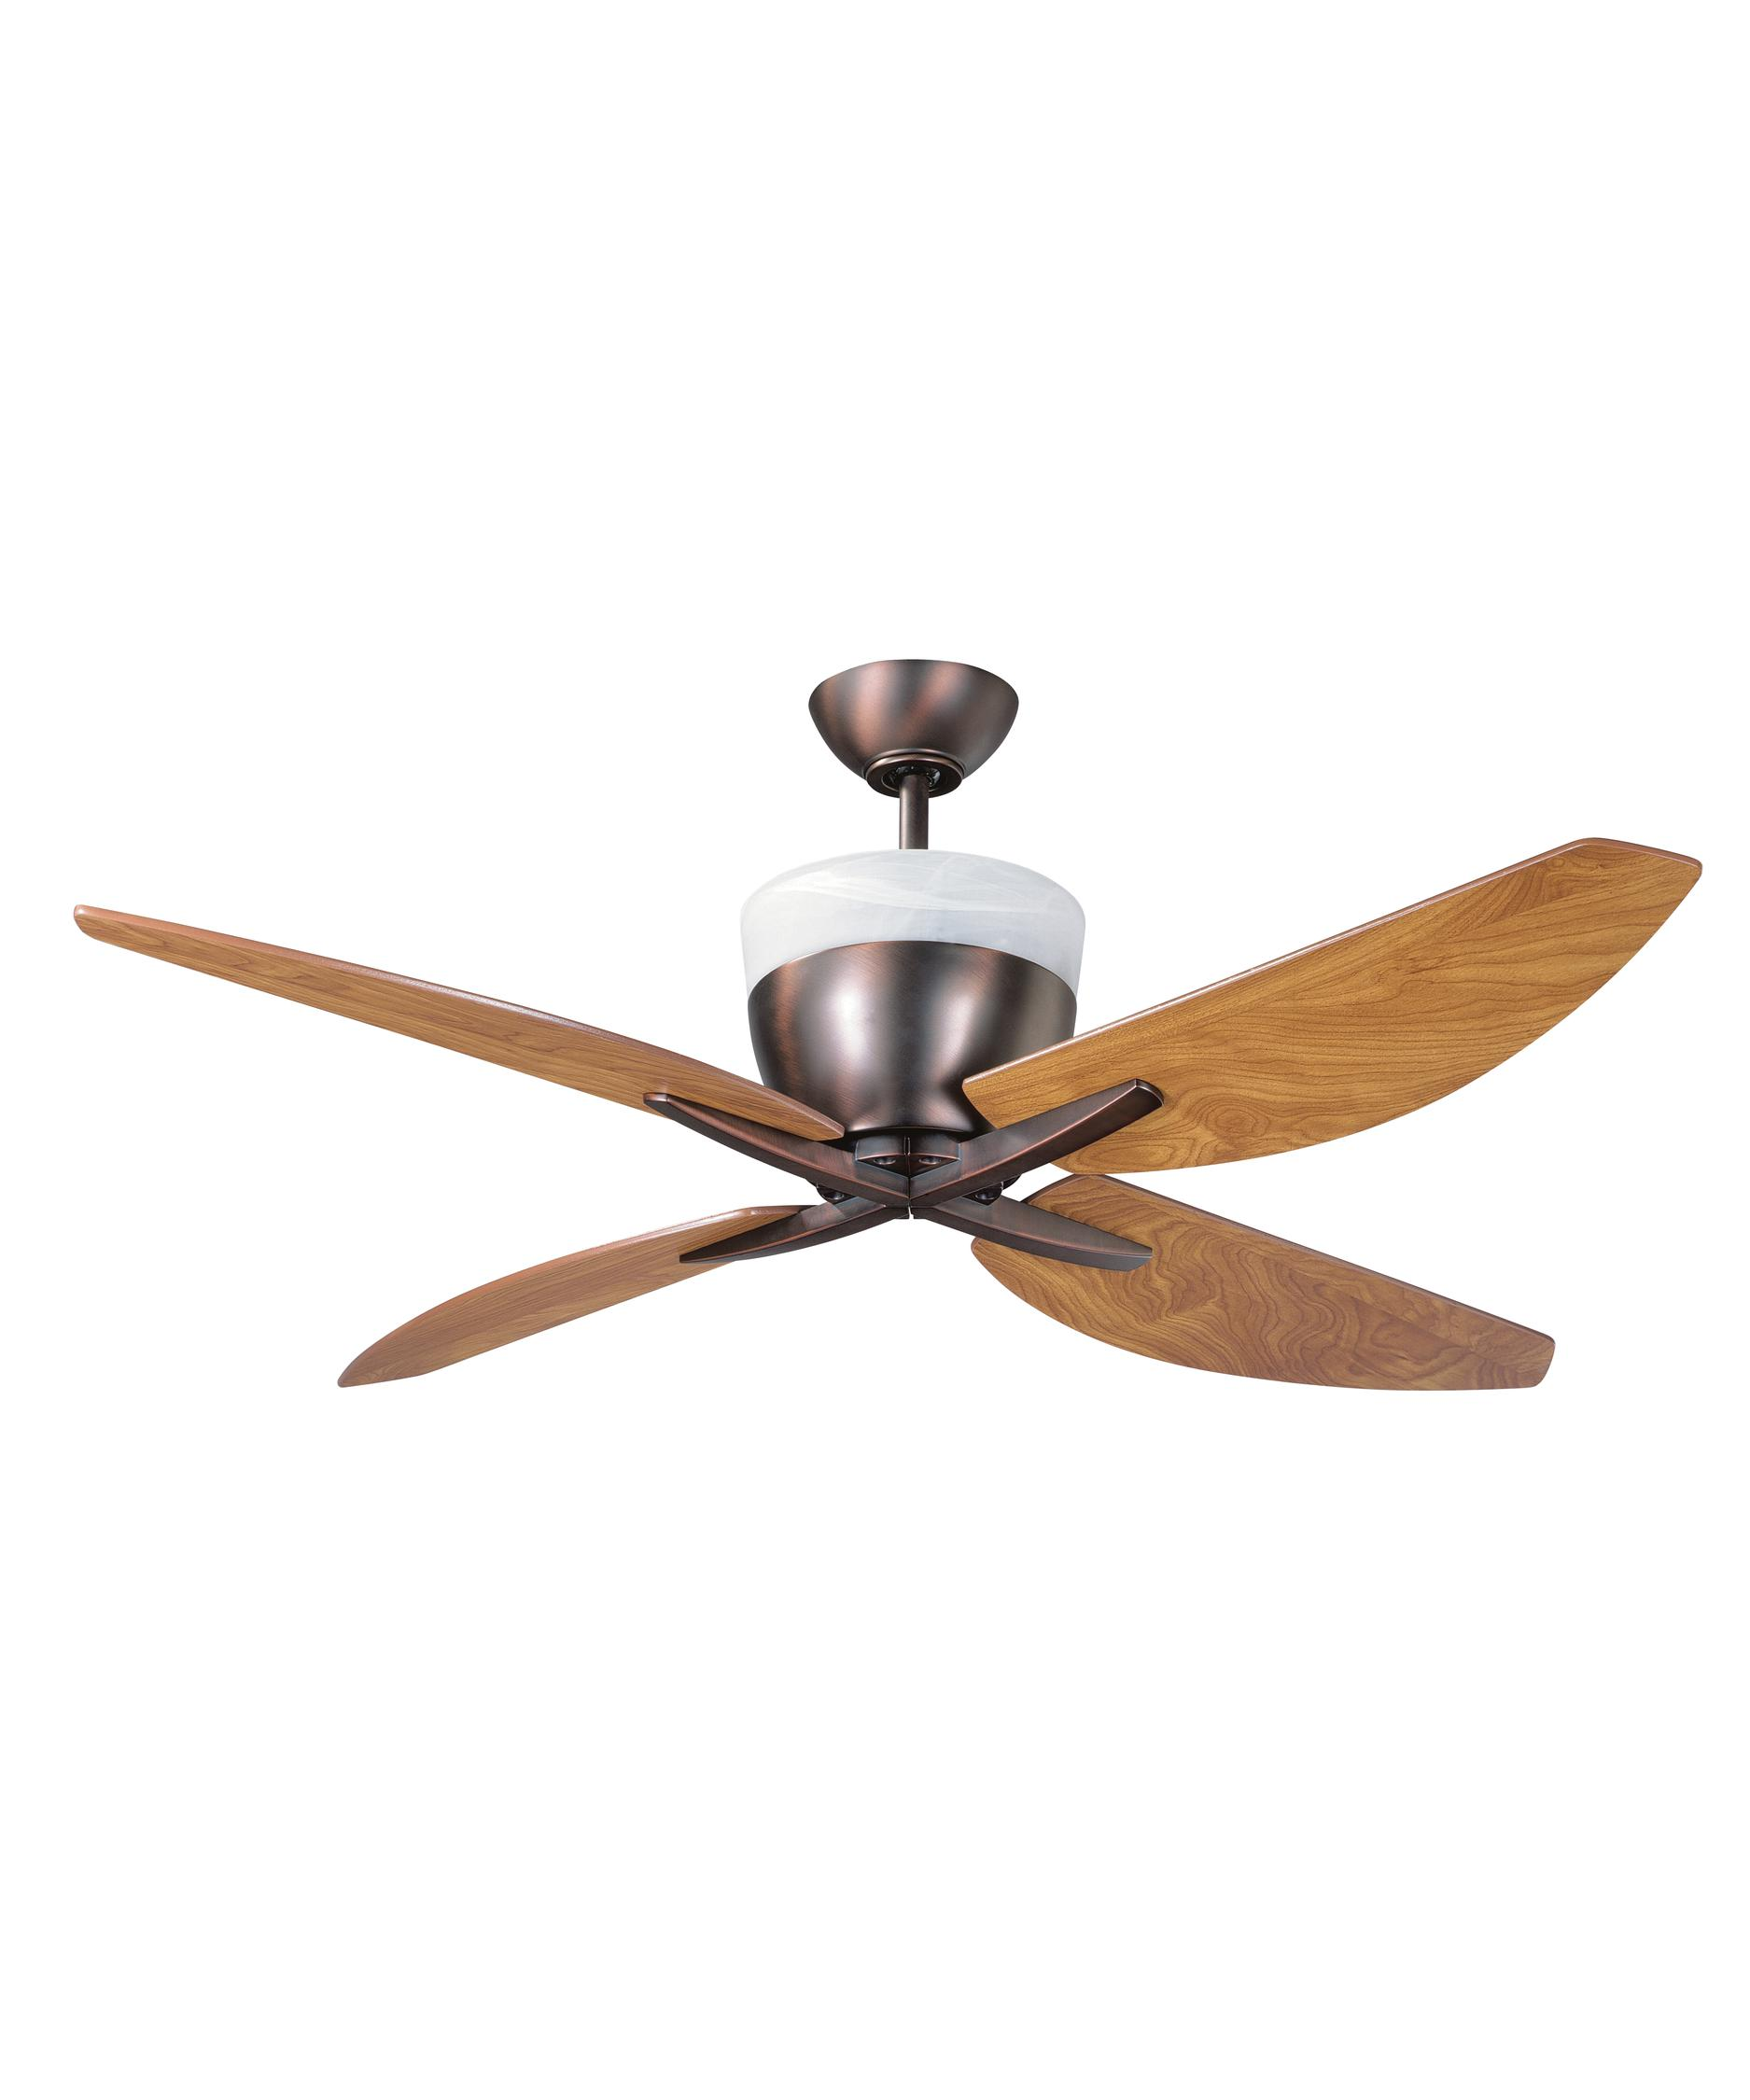 Murray Feiss Ceiling Fan Light Kit: Kendal Lighting AC12552 Savoy 52 Inch Ceiling Fan With